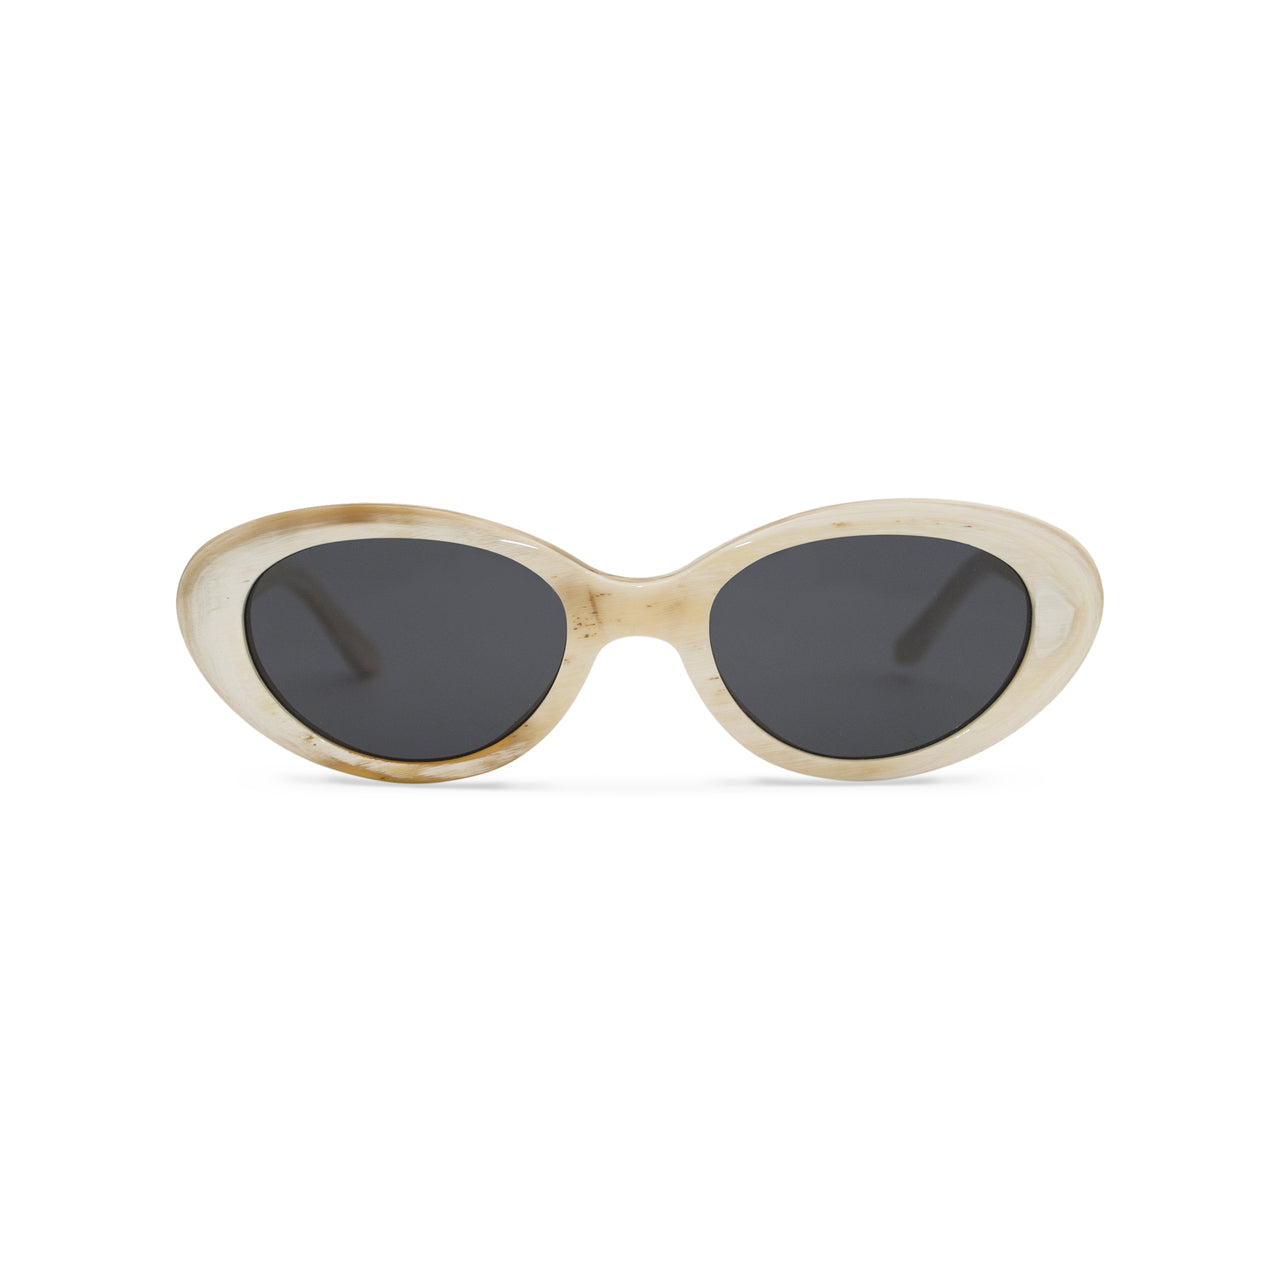 Horn. Oxen. Black Lens - BLYSZAK eyewear eyewear - eyewear, optical, sunglasses